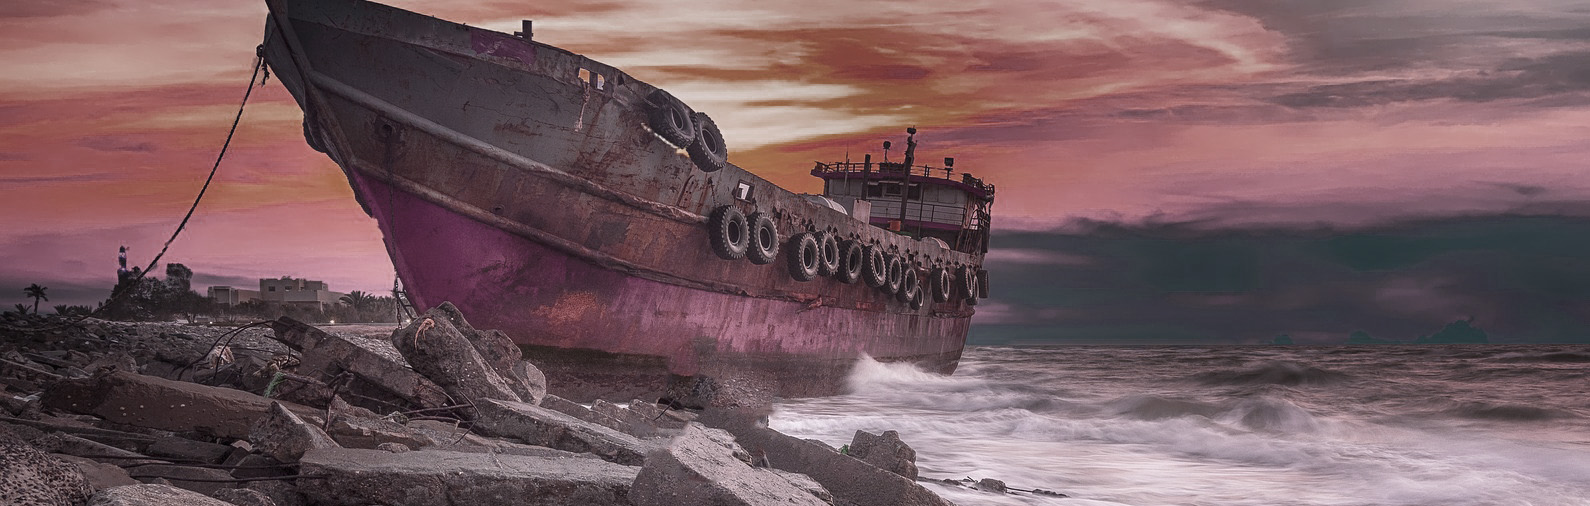 Has your marketing strategy run aground?